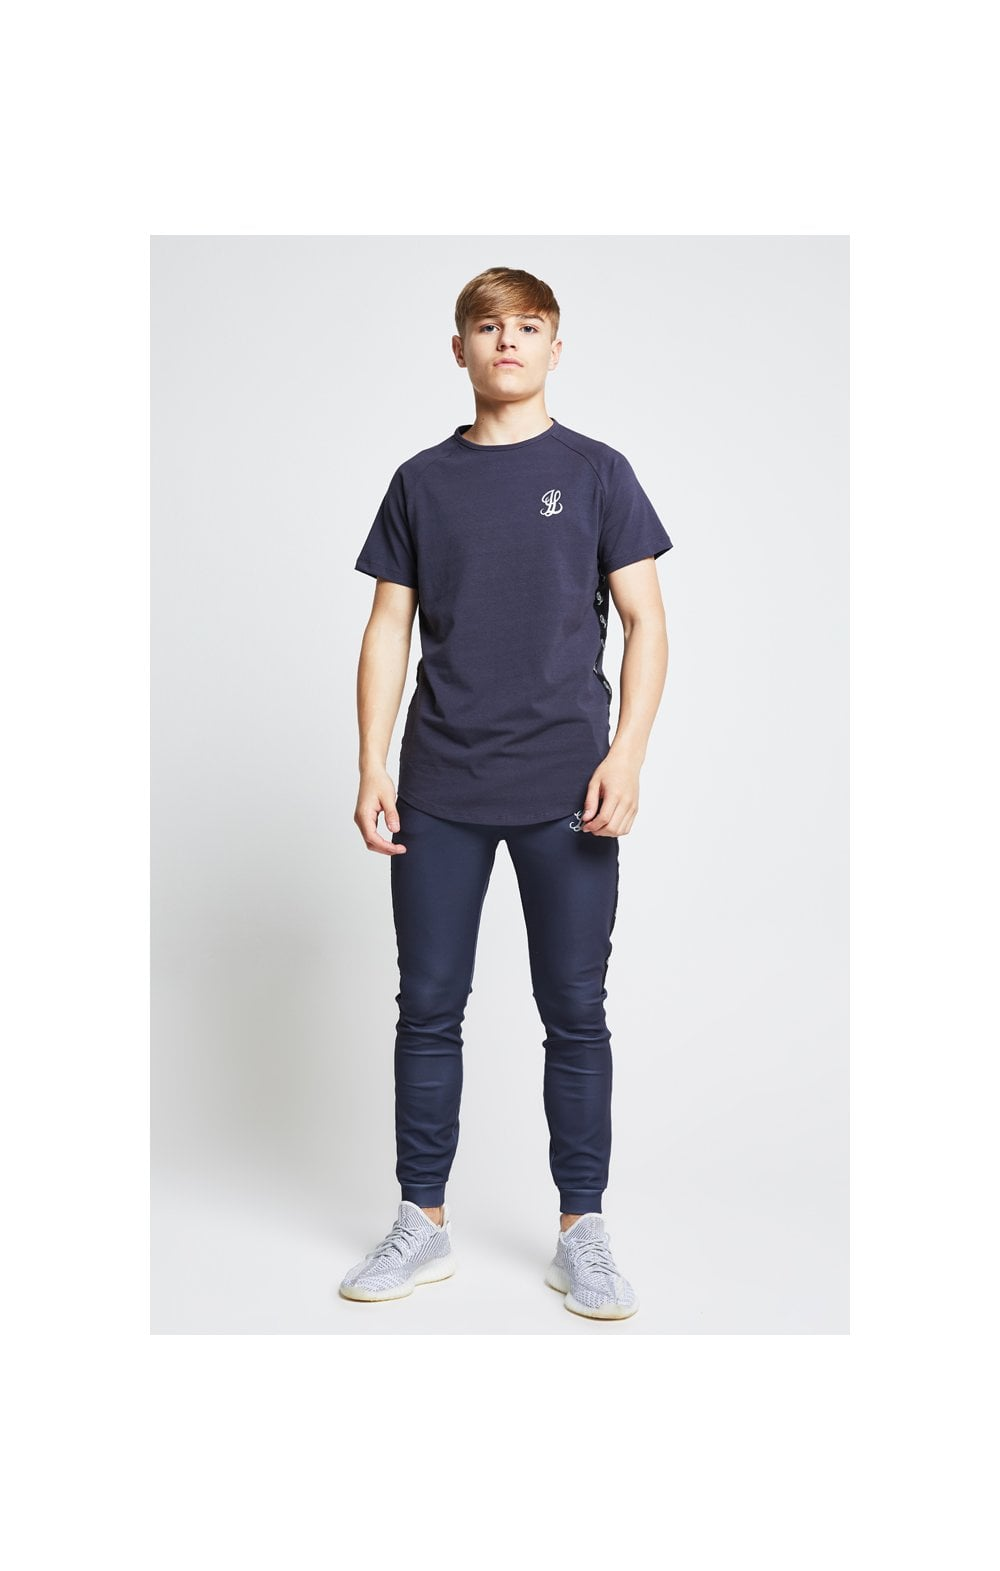 Illusive London Tape Slide Tee - Grey (4)